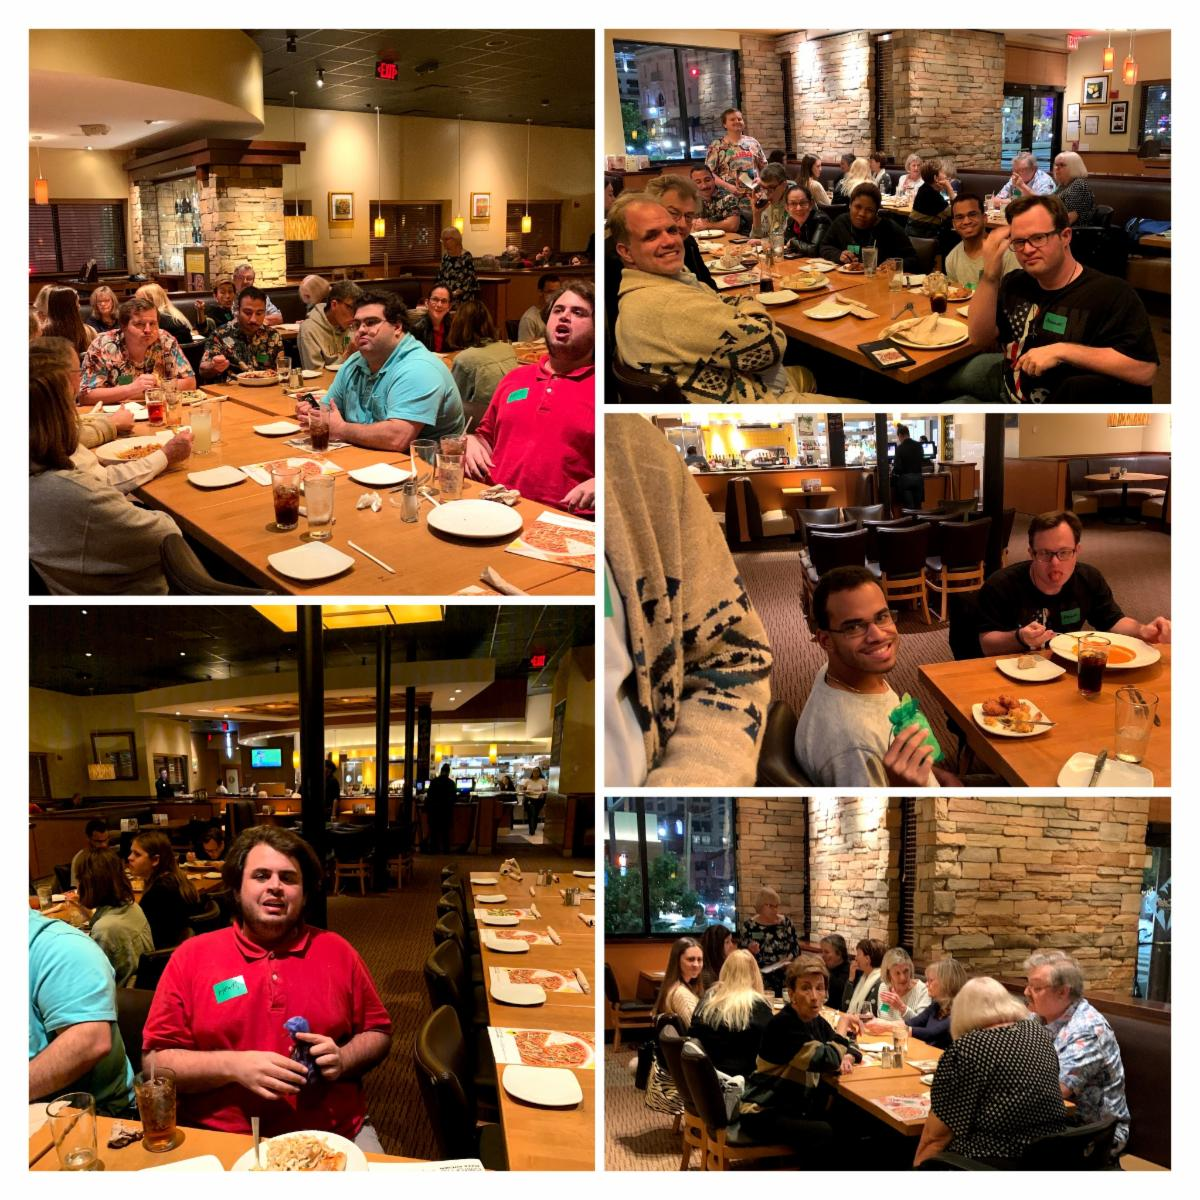 Collage of 5 pictures from the January Supper Social Club everyone is sitting at tables eating dinner and talking